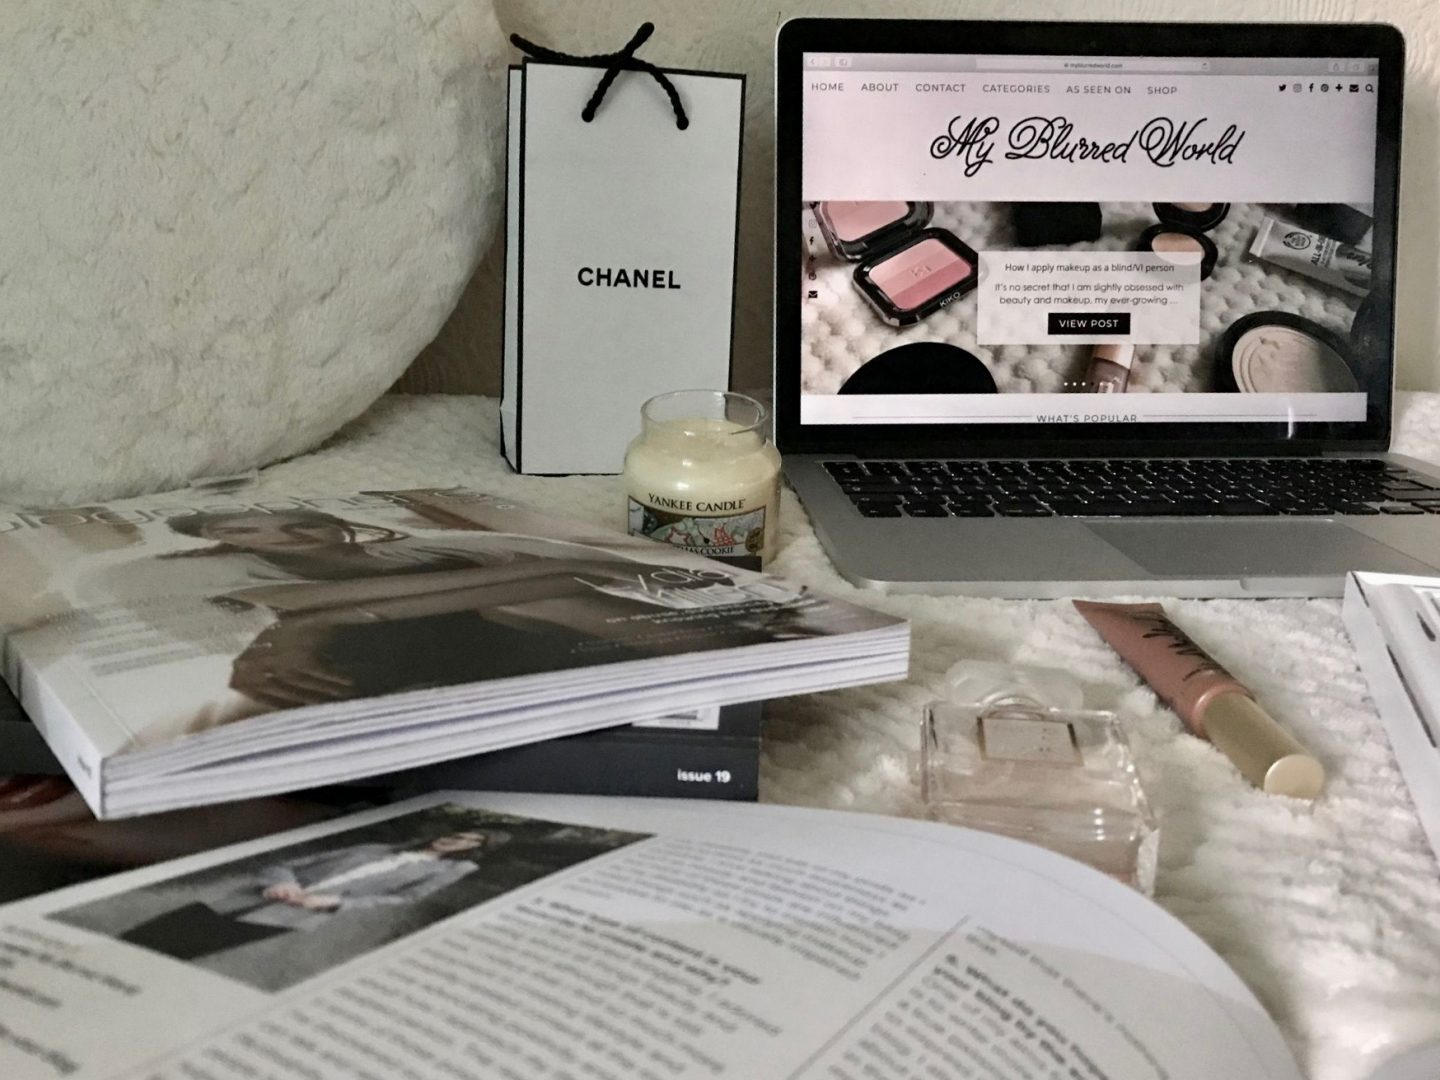 A photo of my blog on a laptop, my page in the June edition of Blogosphere magazine, other issues of blogosphere, a couple of beauty products and a chanel perfume bag beside my laptop